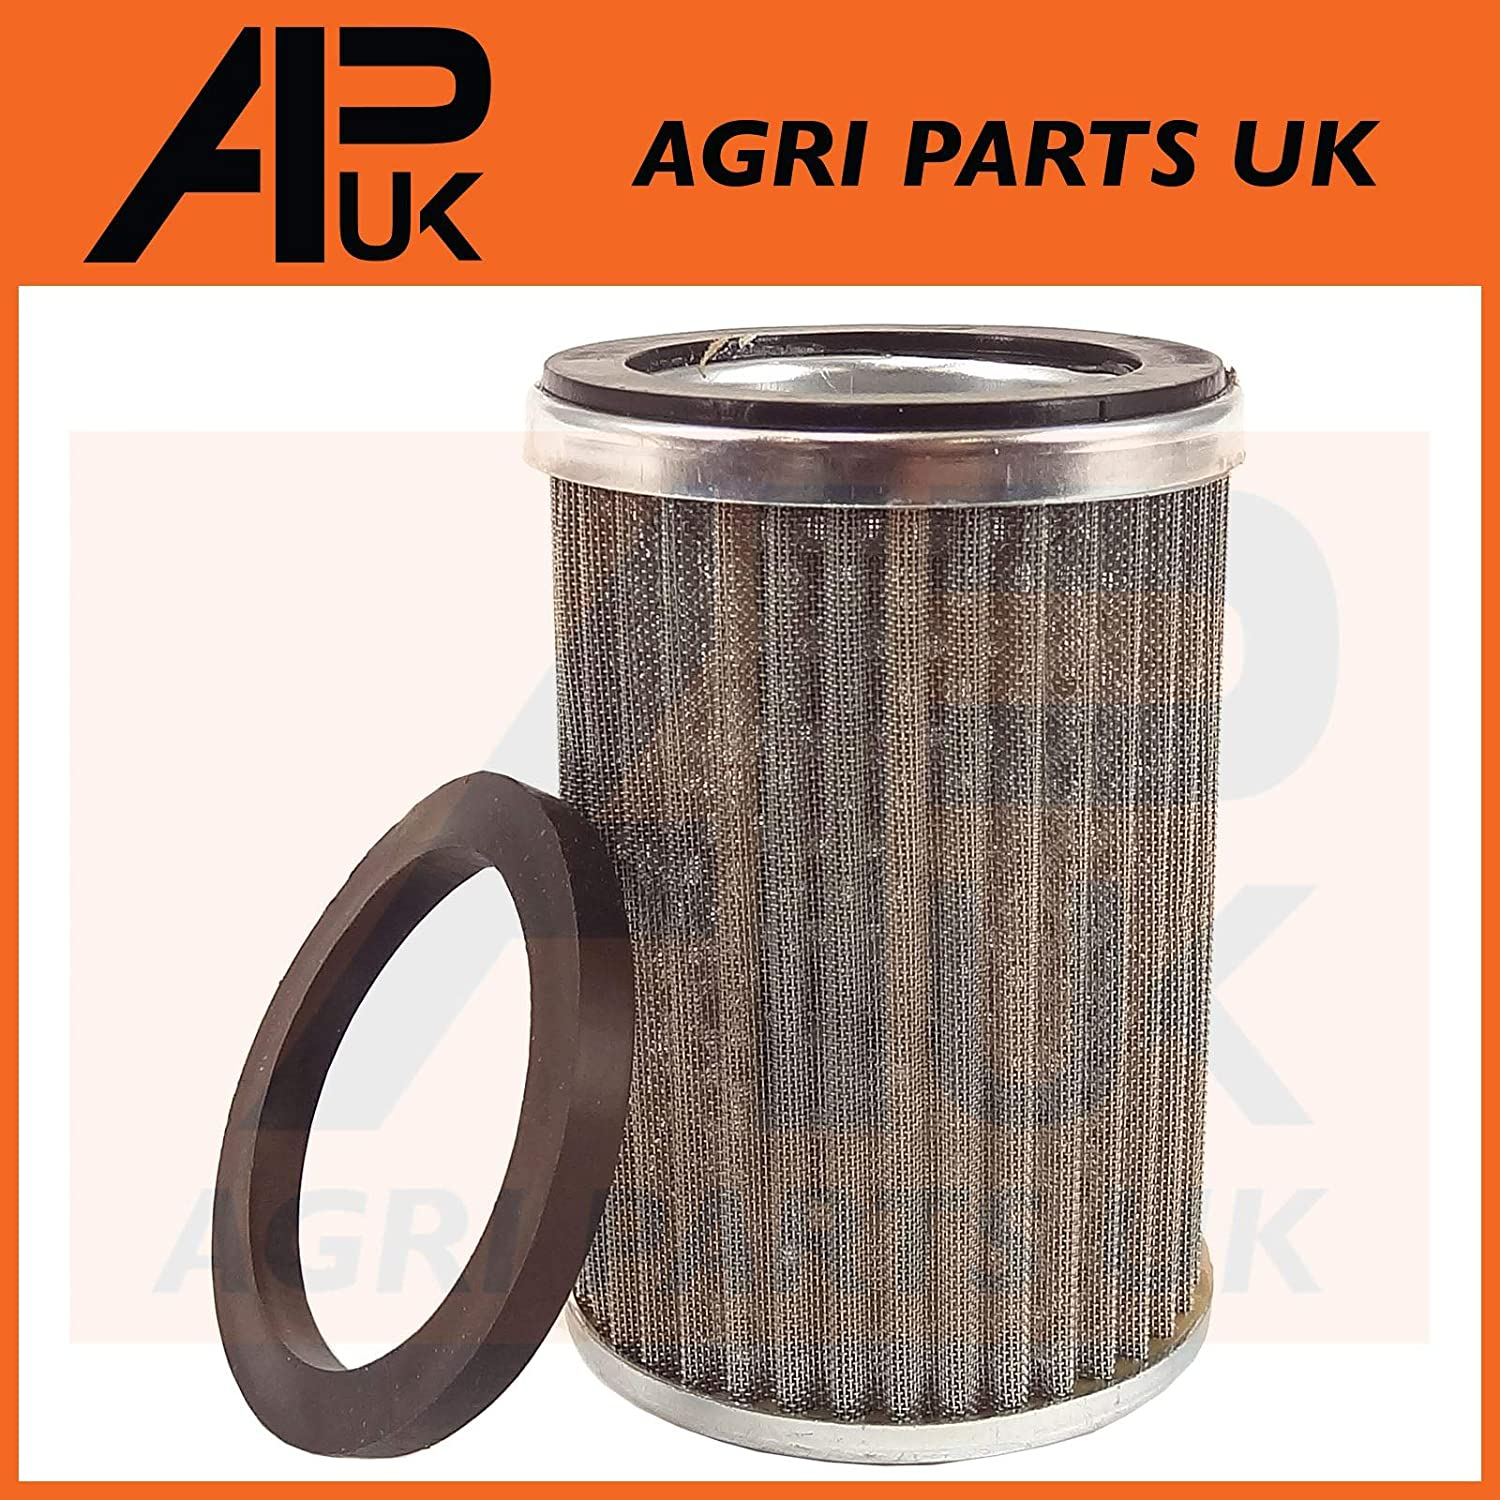 APUK Hydraulic oil Filter Strainer compatible with Massey Ferguson 35 65 FE35 135 165 290 390 Tractor